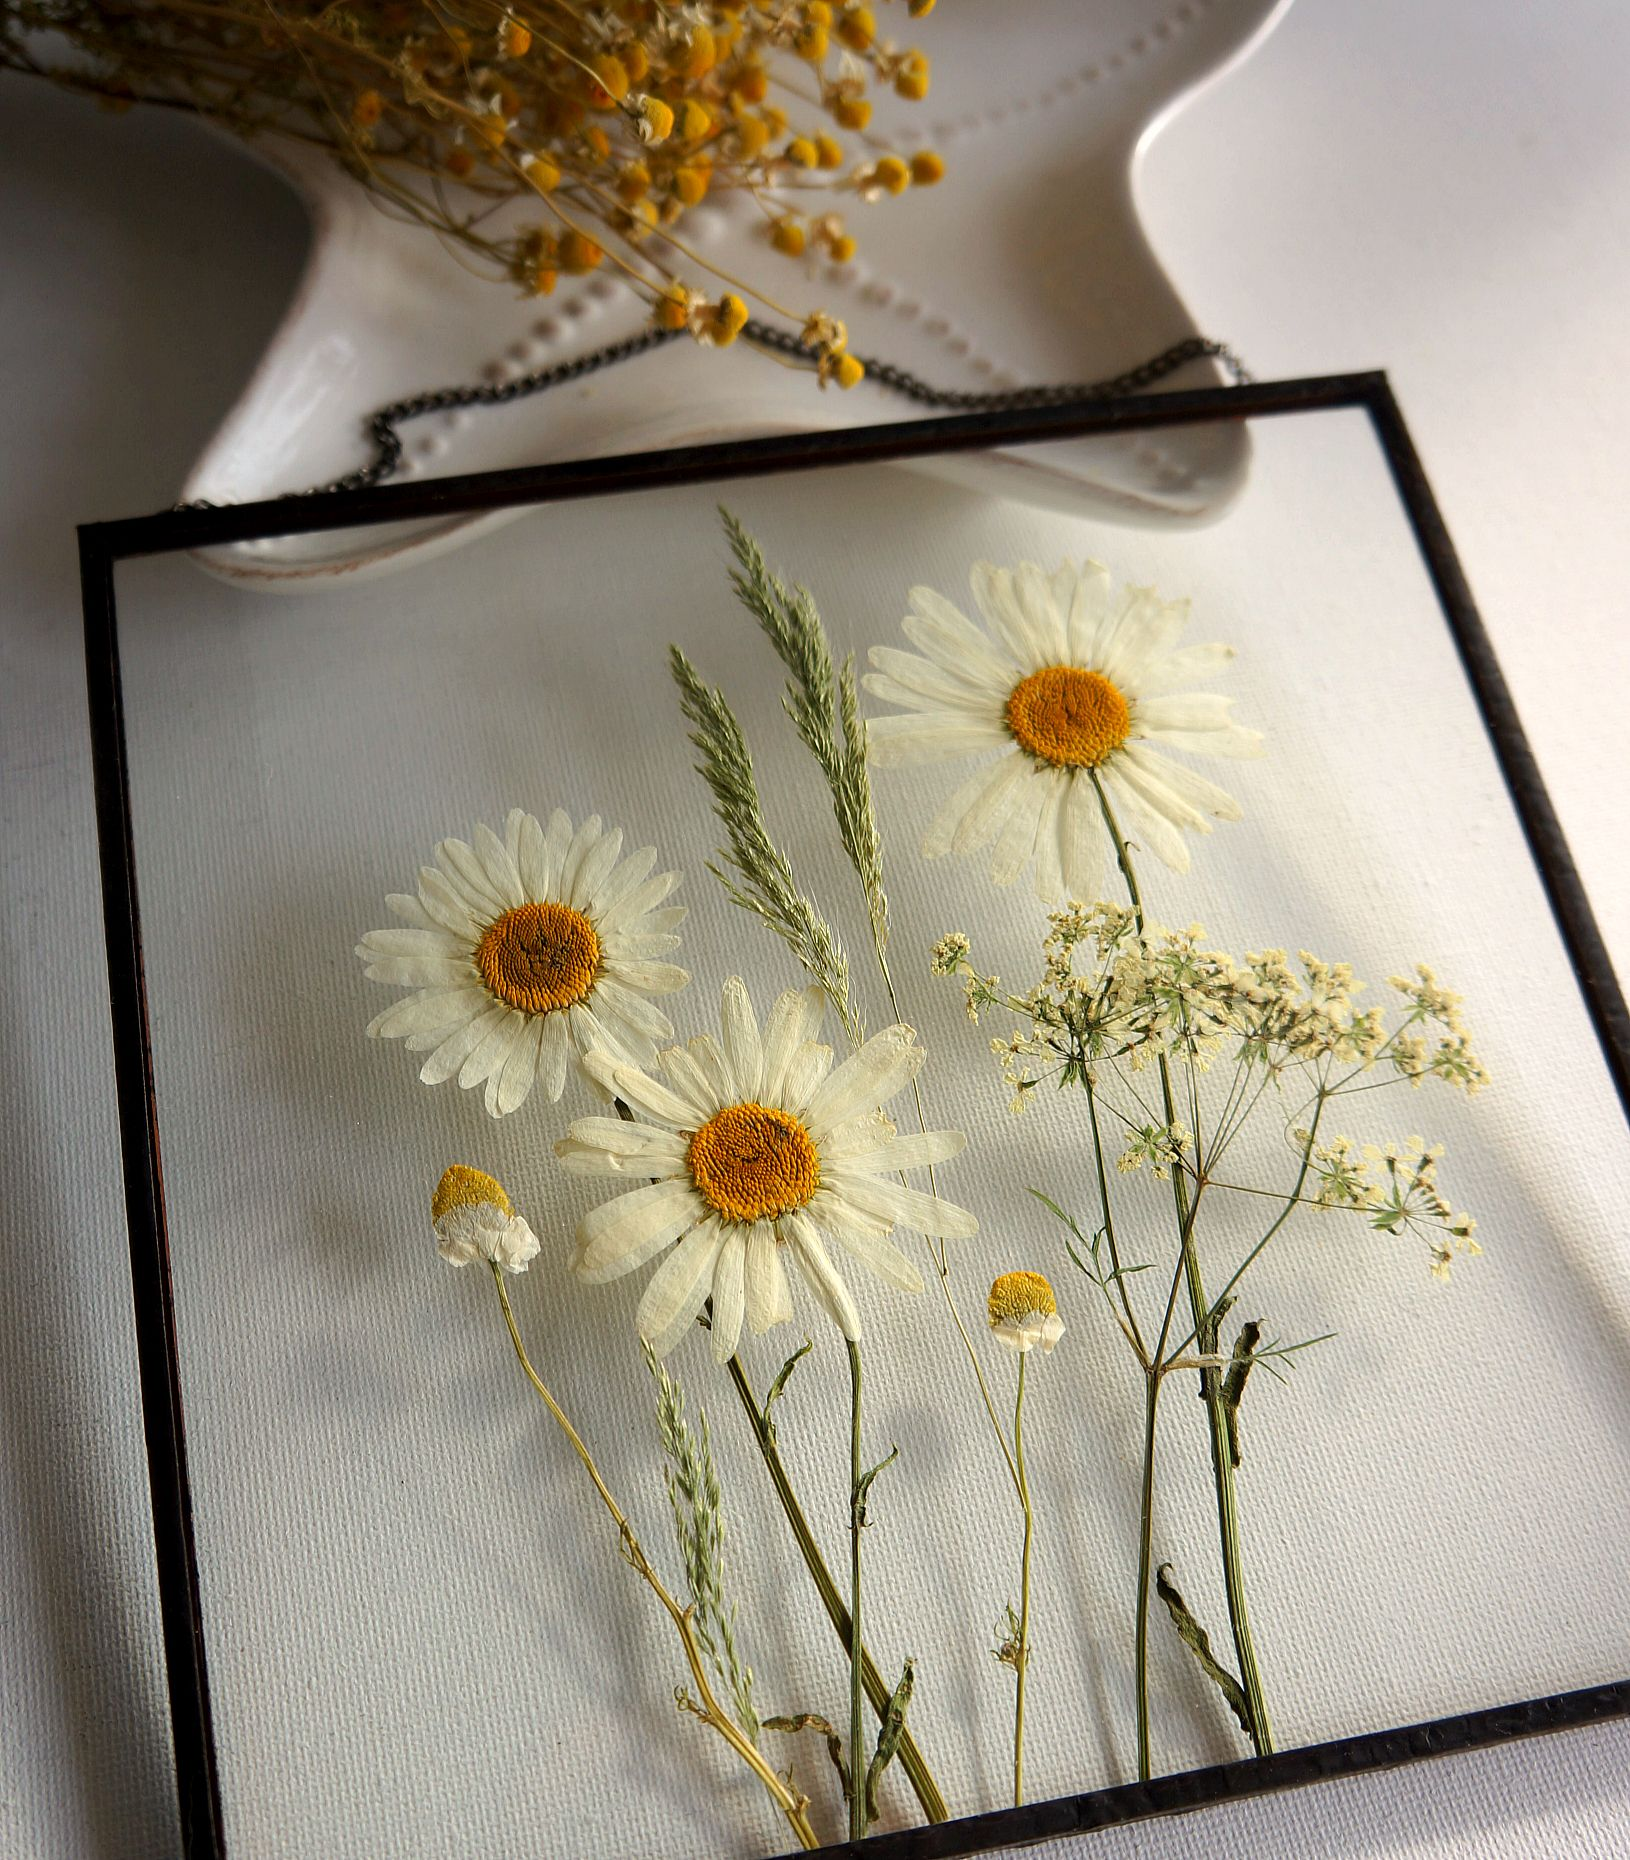 Real Pressed White Daisies Summer Flowers Gift Daisy Wall Hanging Pressed White Flowers Glass Frame Daisies Wall Art Rustic Farmhouse Decor Flower Wall Art Pressed Flower Art Nature Wall Art